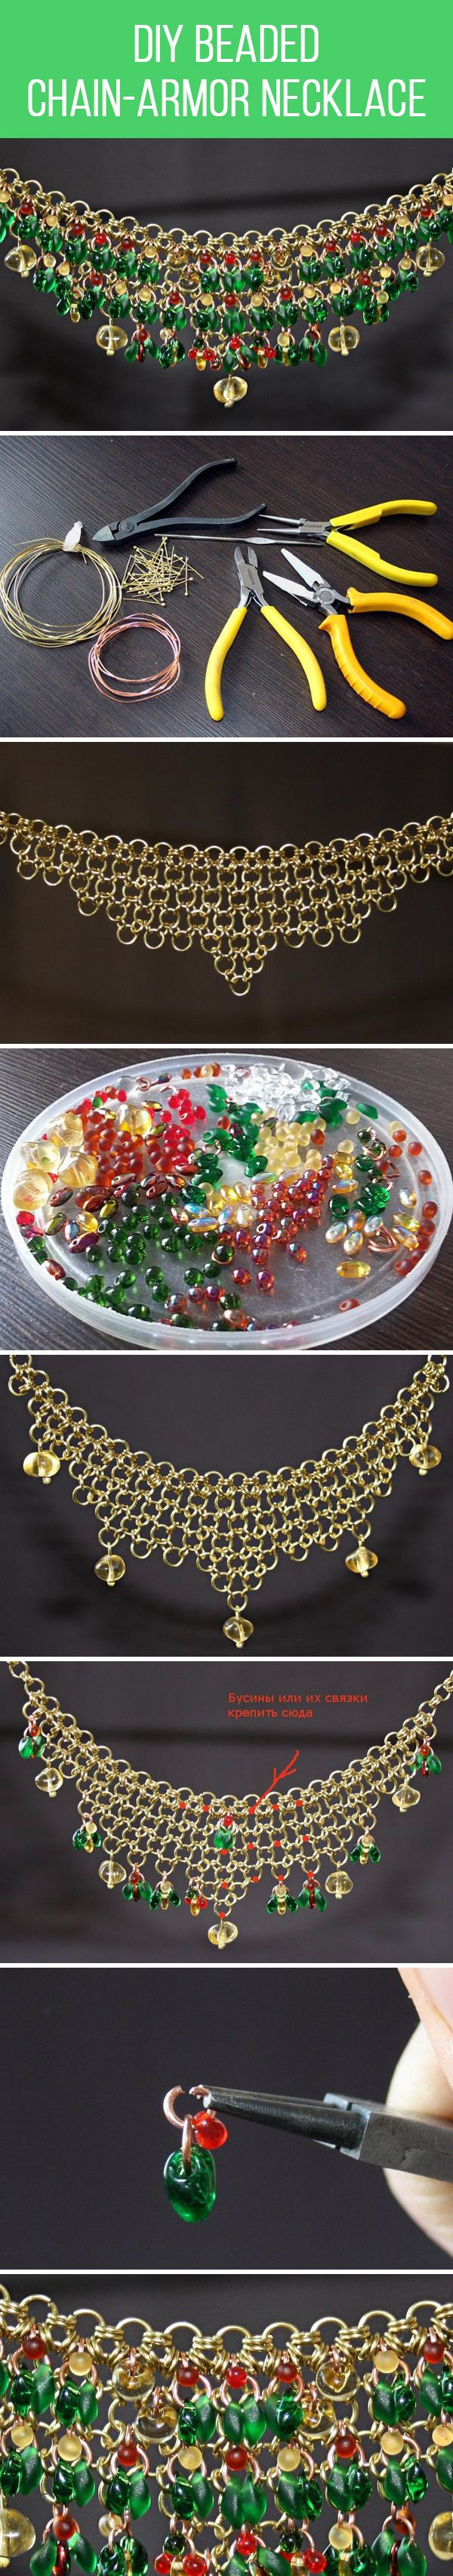 DIY bright beaded chain-armor necklace